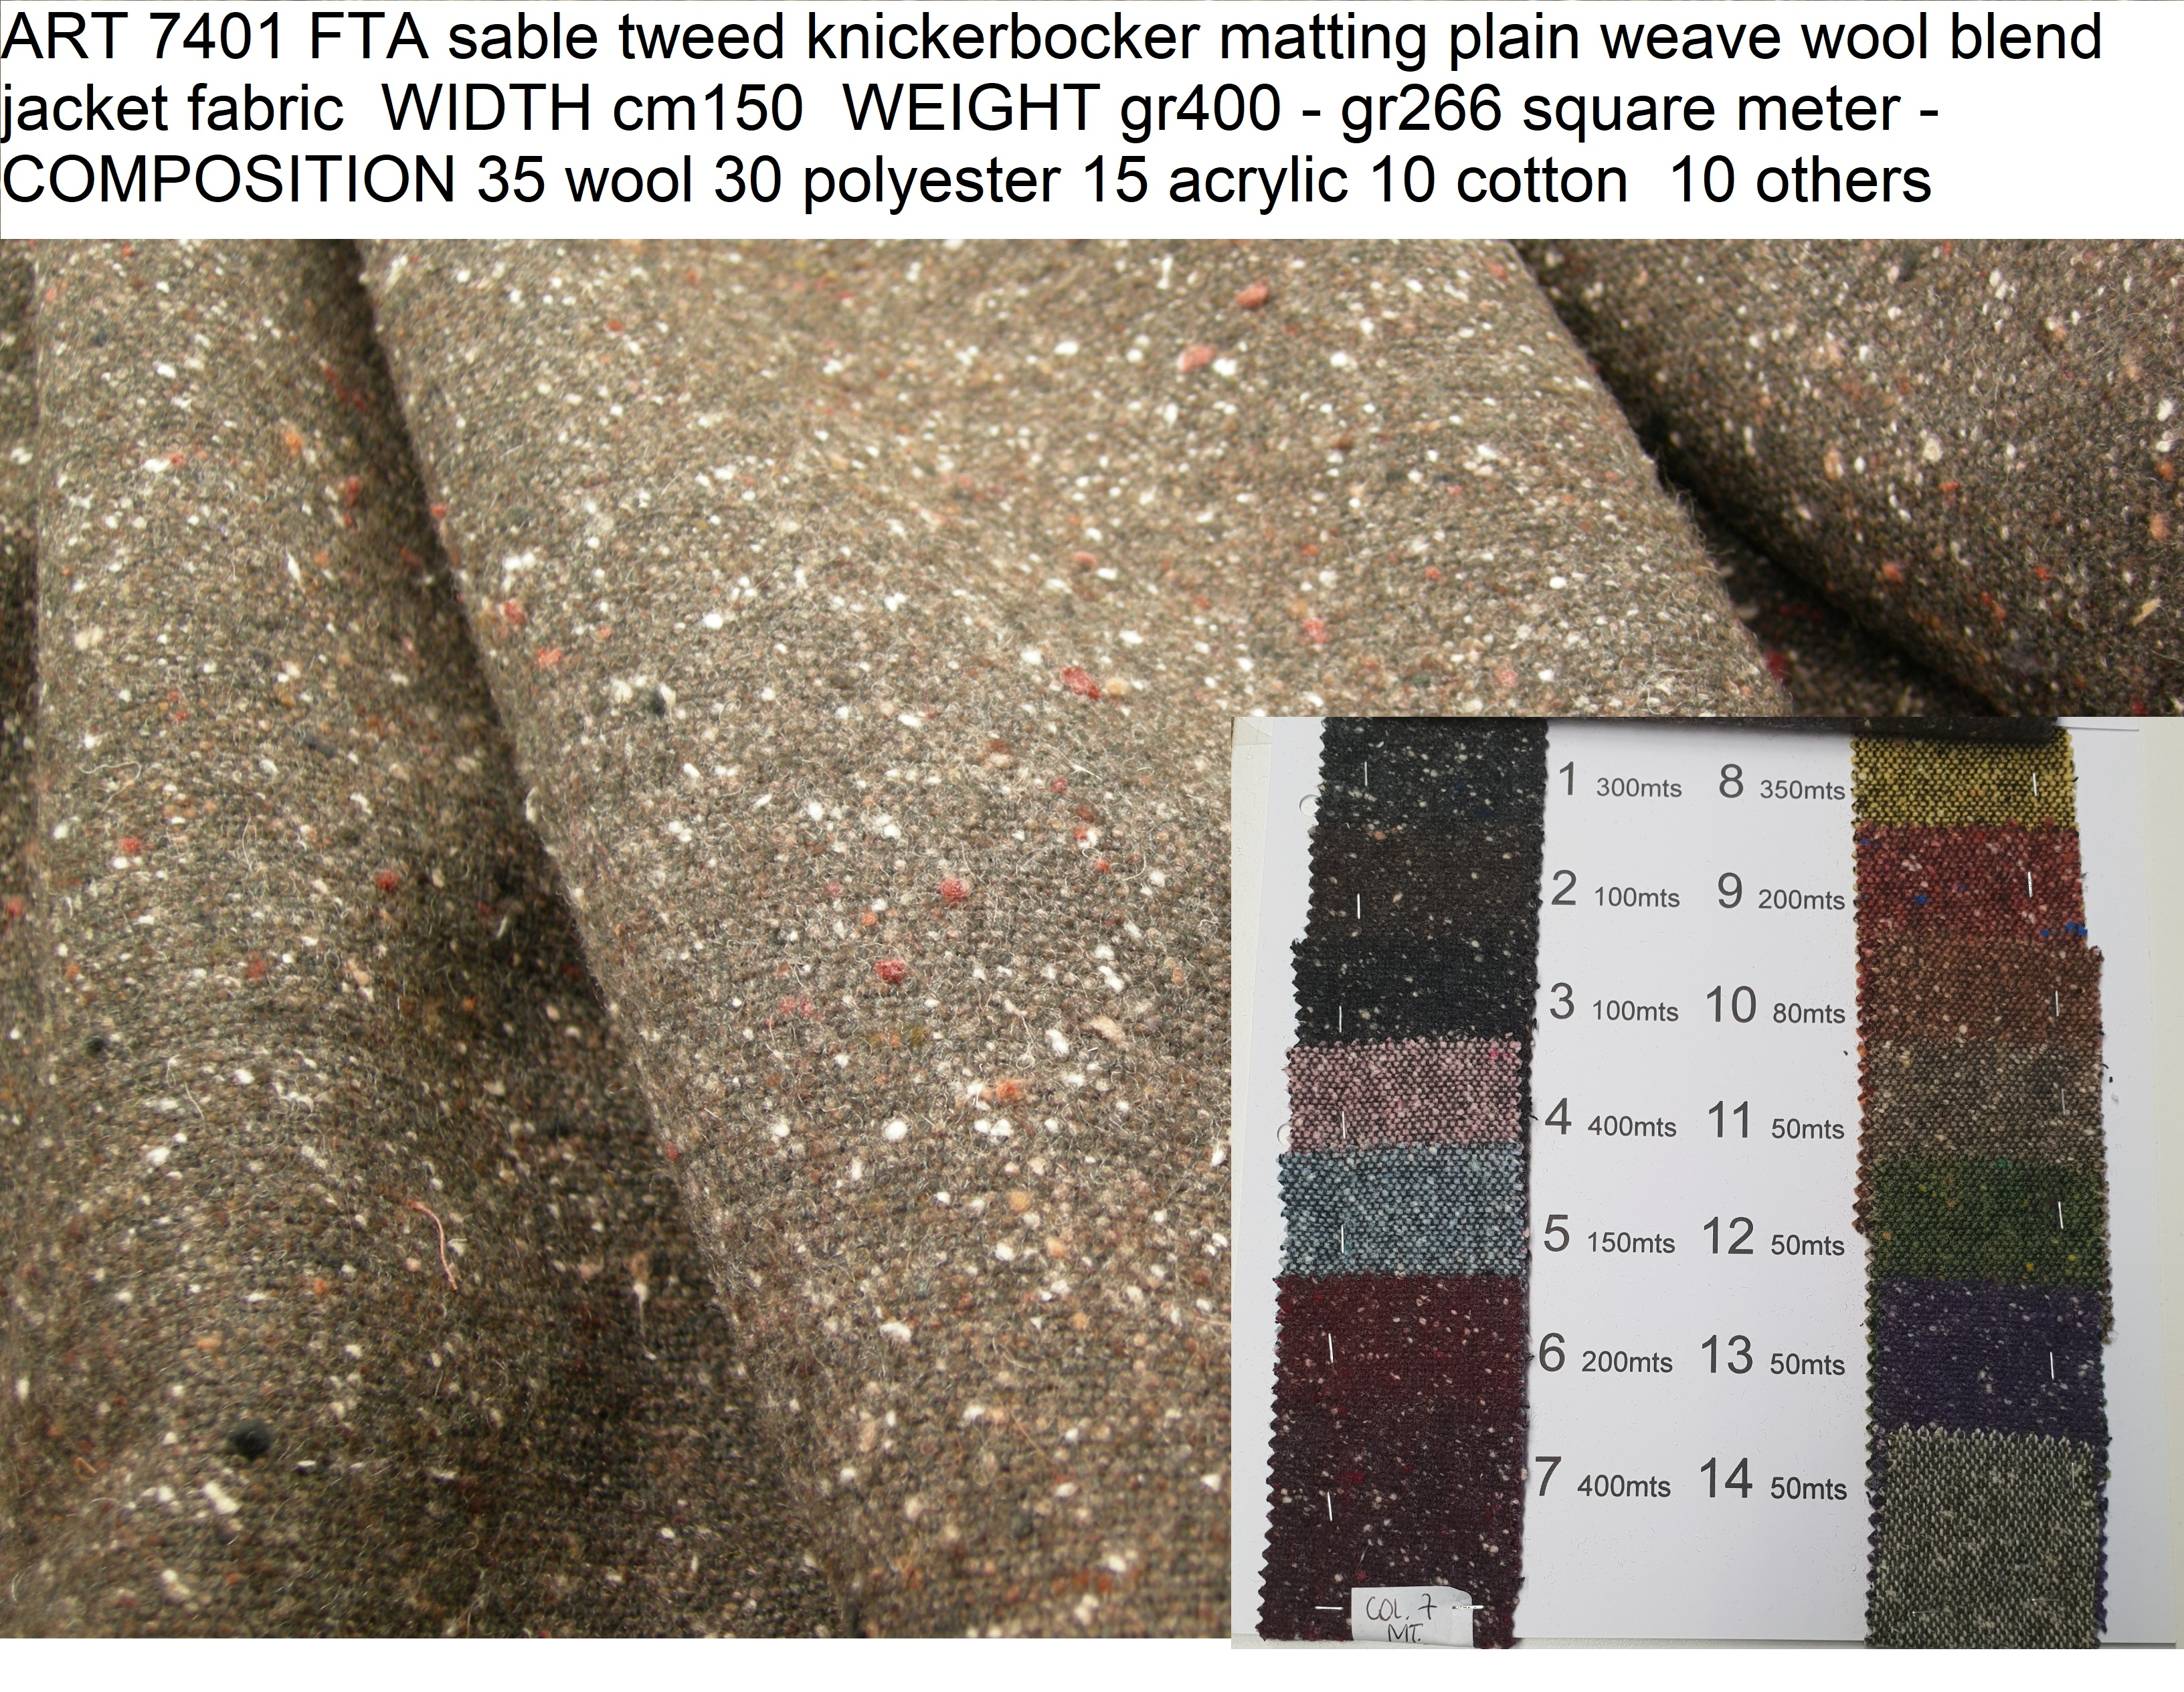 ART 7401 FTA sable tweed knickerbocker matting plain weave wool blend jacket fabric WIDTH cm150 WEIGHT gr400 - gr266 square meter - COMPOSITION 35 wool 30 polyester 15 acrylic 10 cotton 10 others